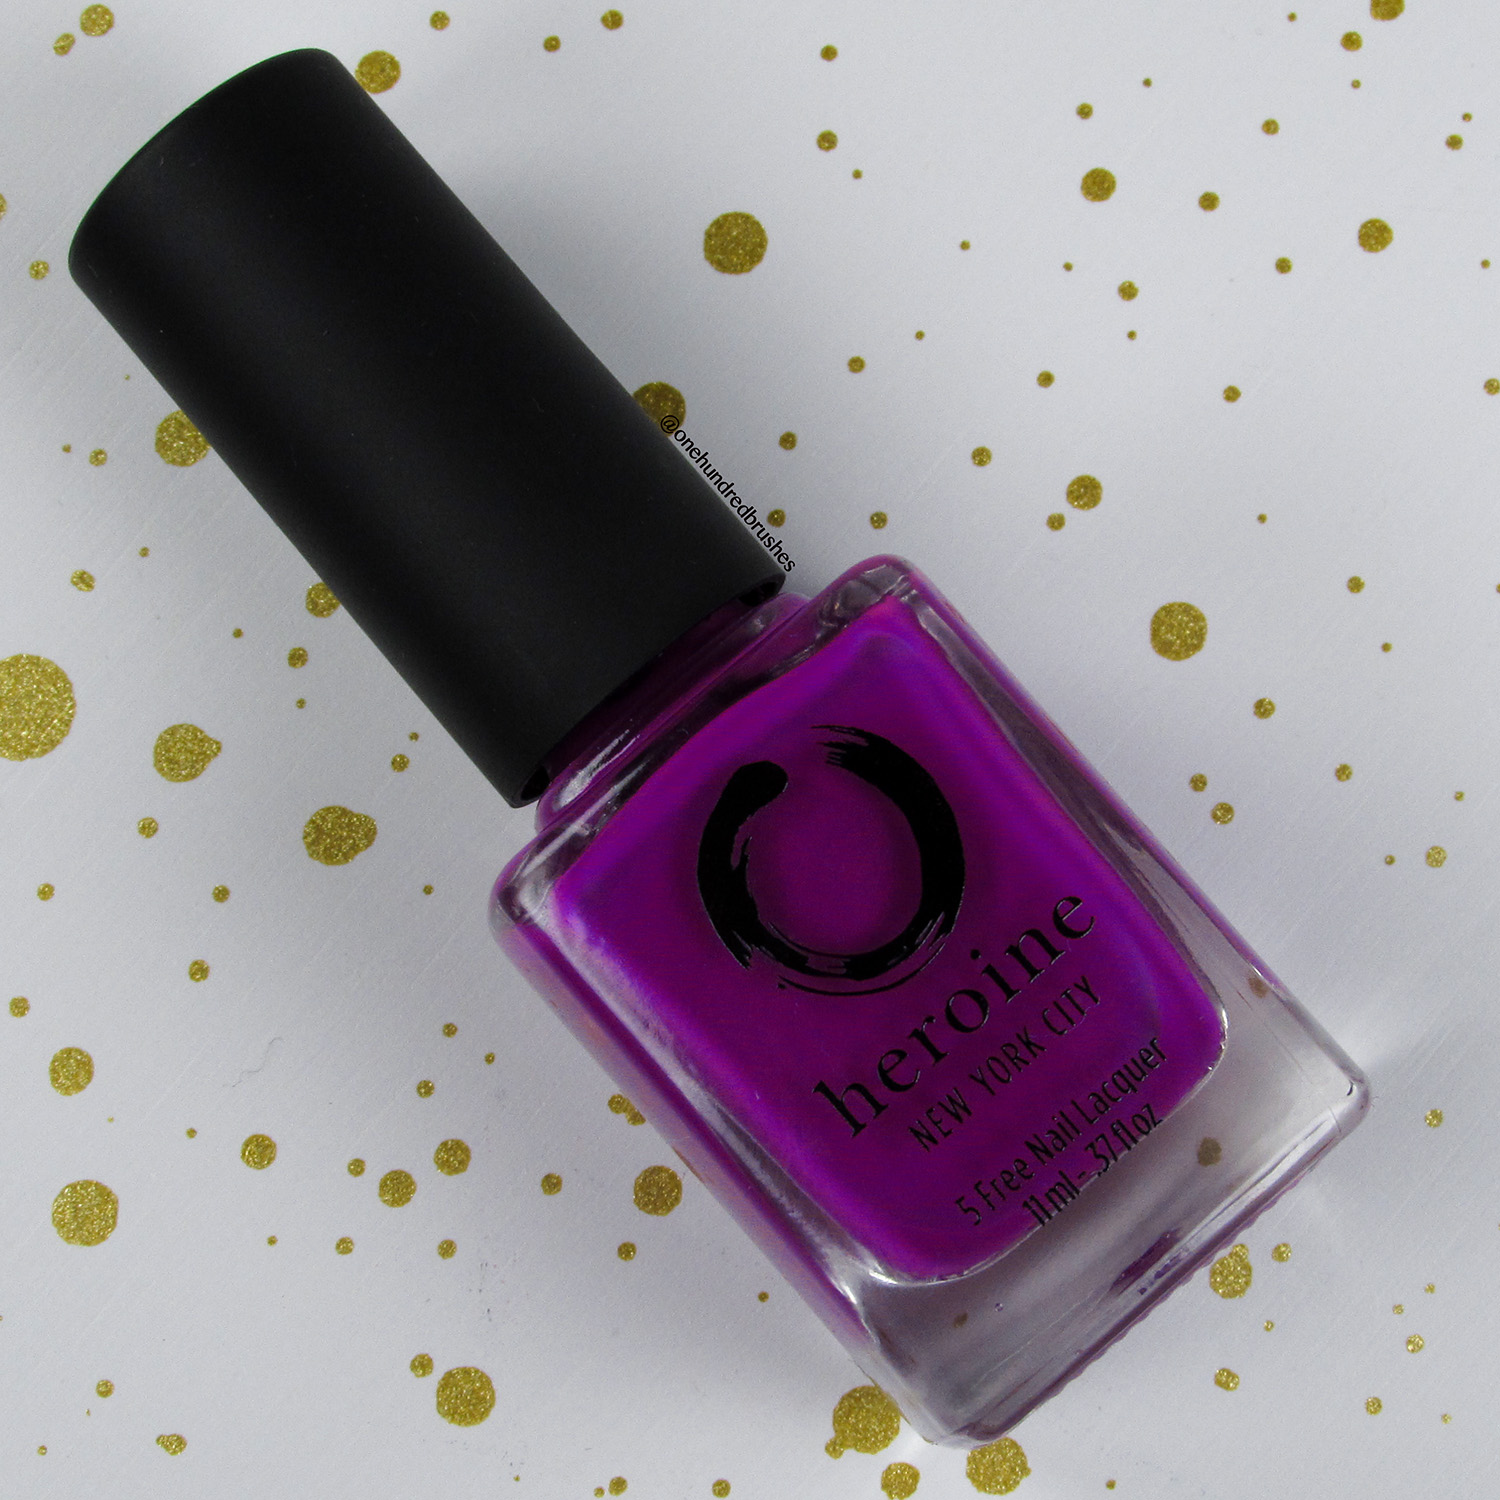 Touch-Me-Not - Heroine NYC - The Neons - orchid - purple